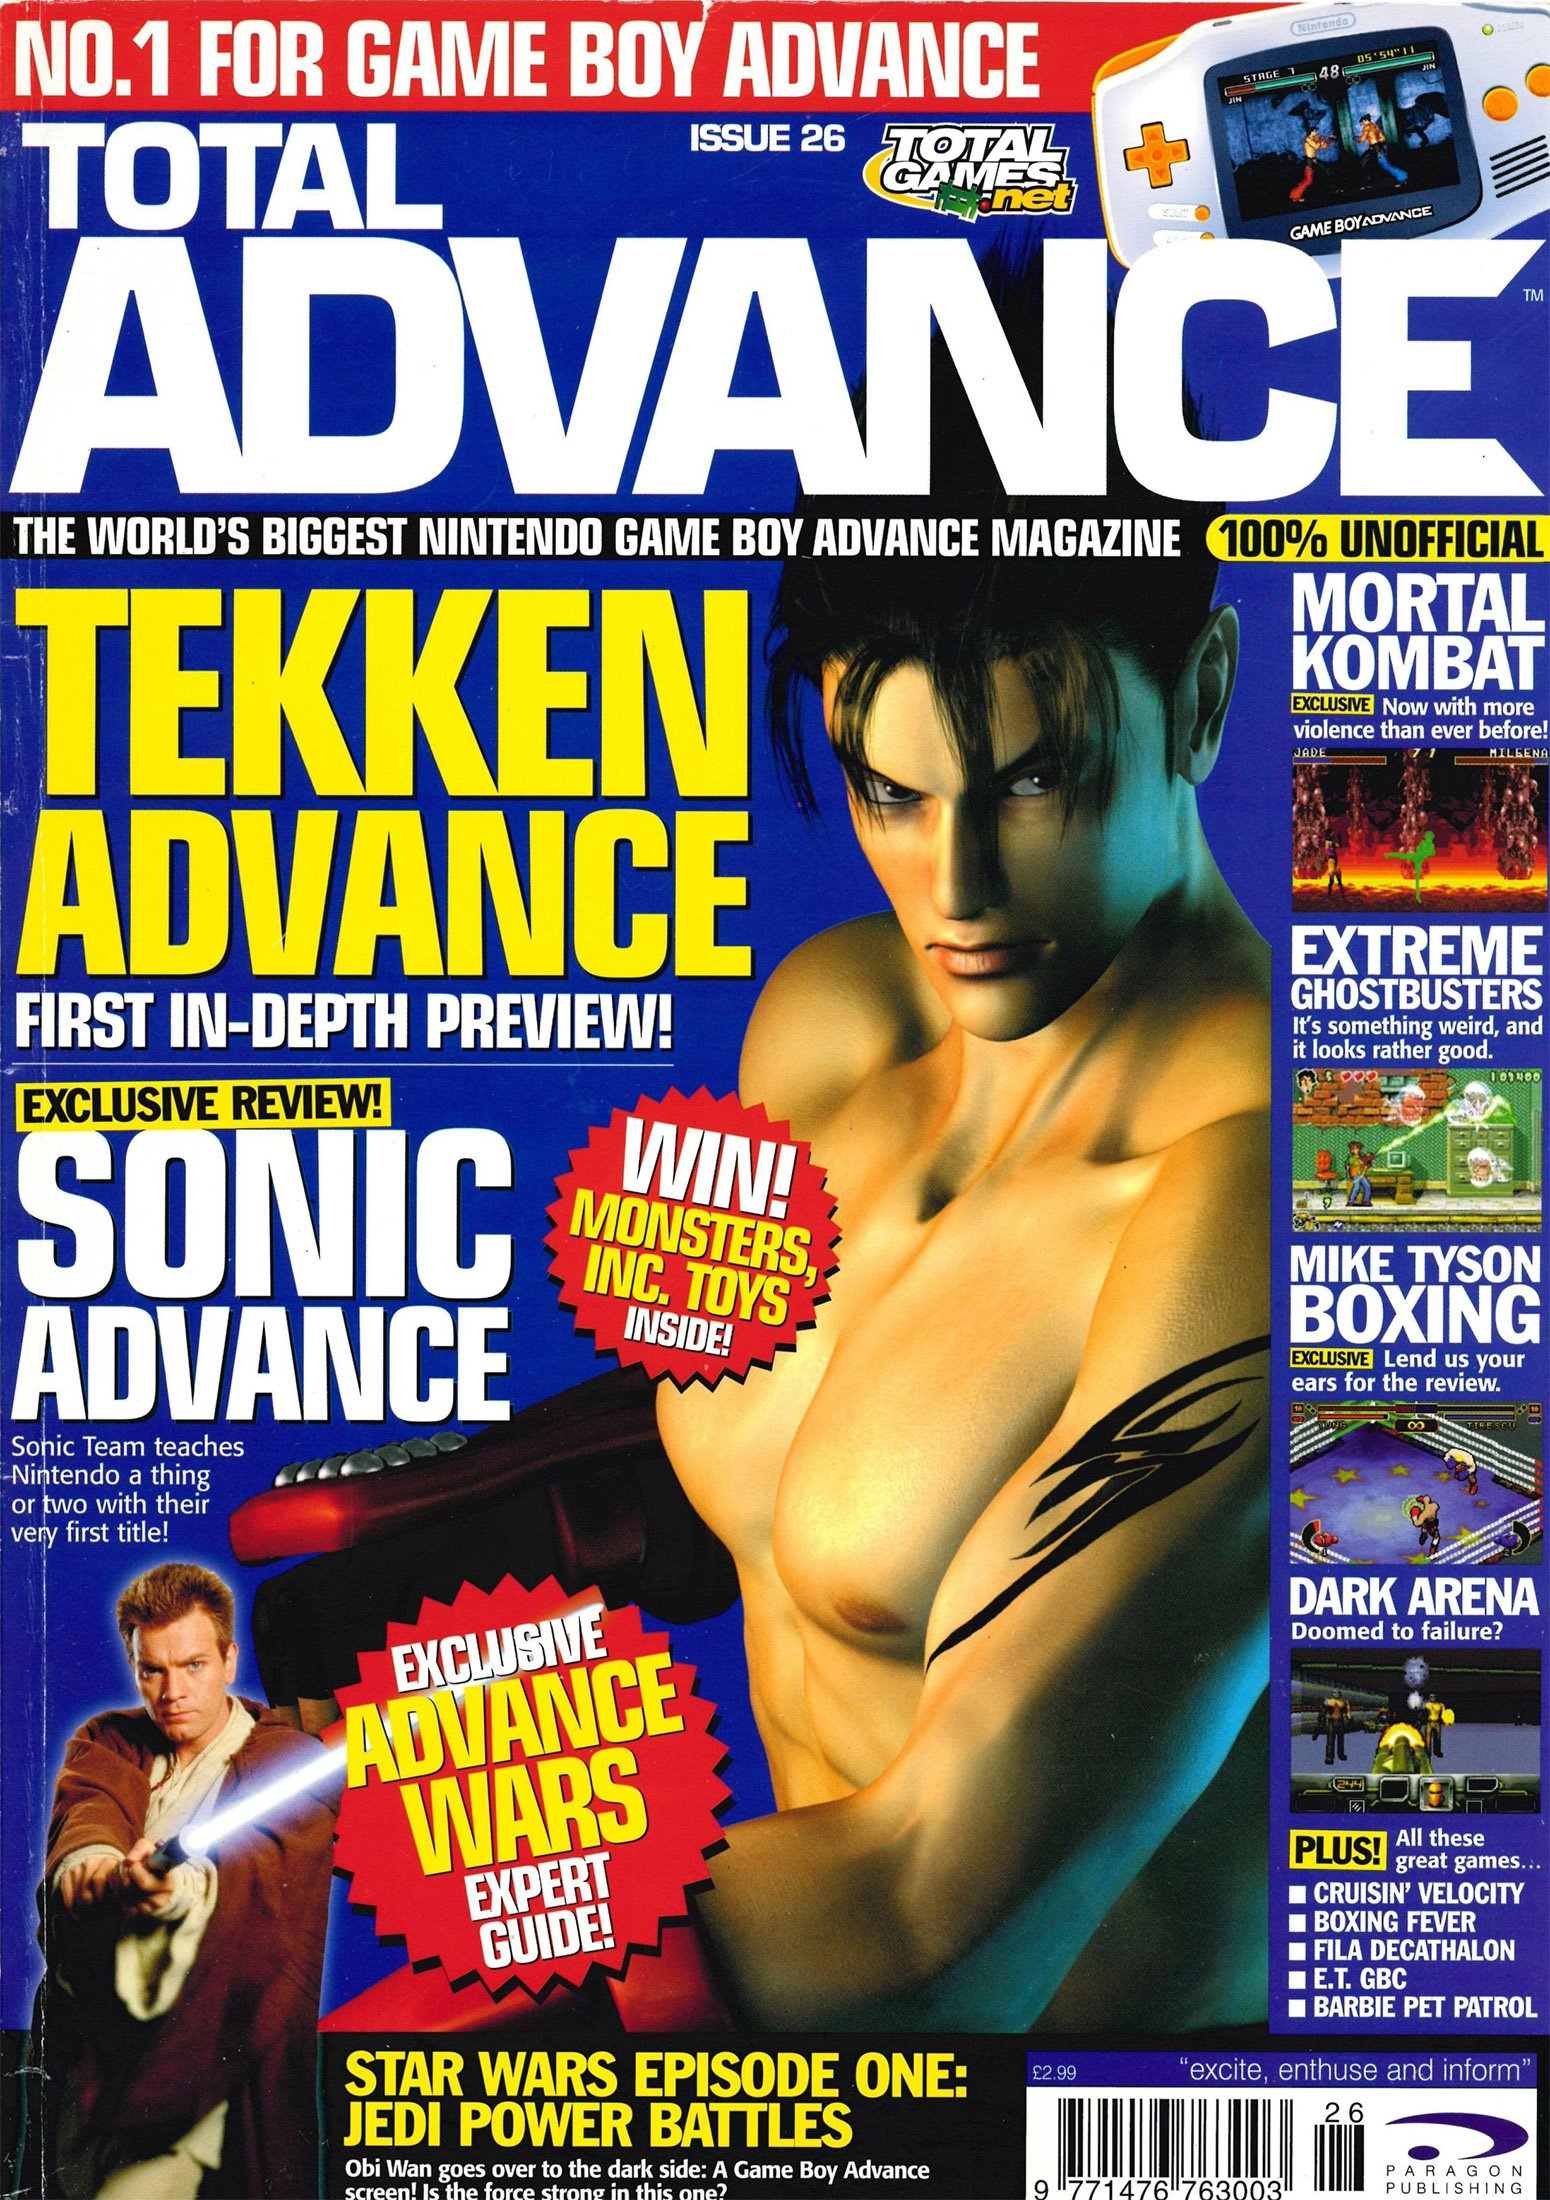 Total Advance Issue 26 (February 2002)